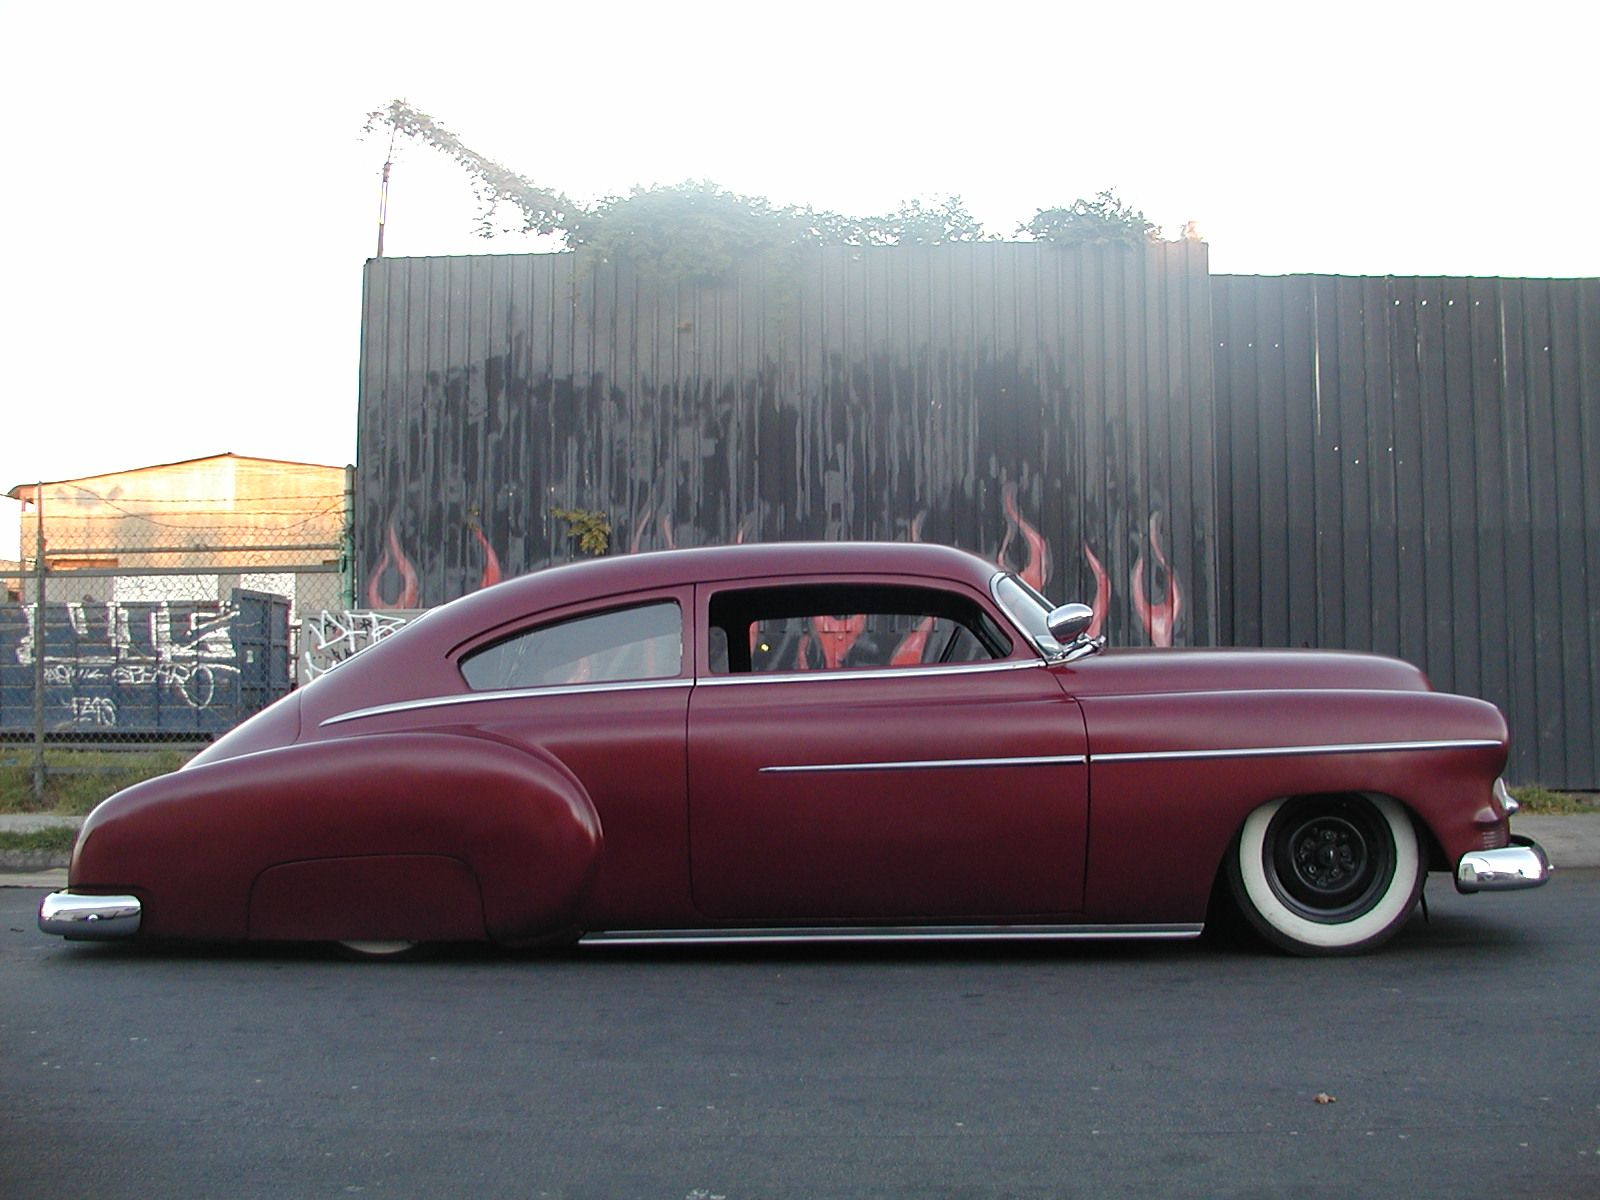 49 Chevy | Auto Classic & Hot Rods | Pinterest | Chevrolet, Eugene ...